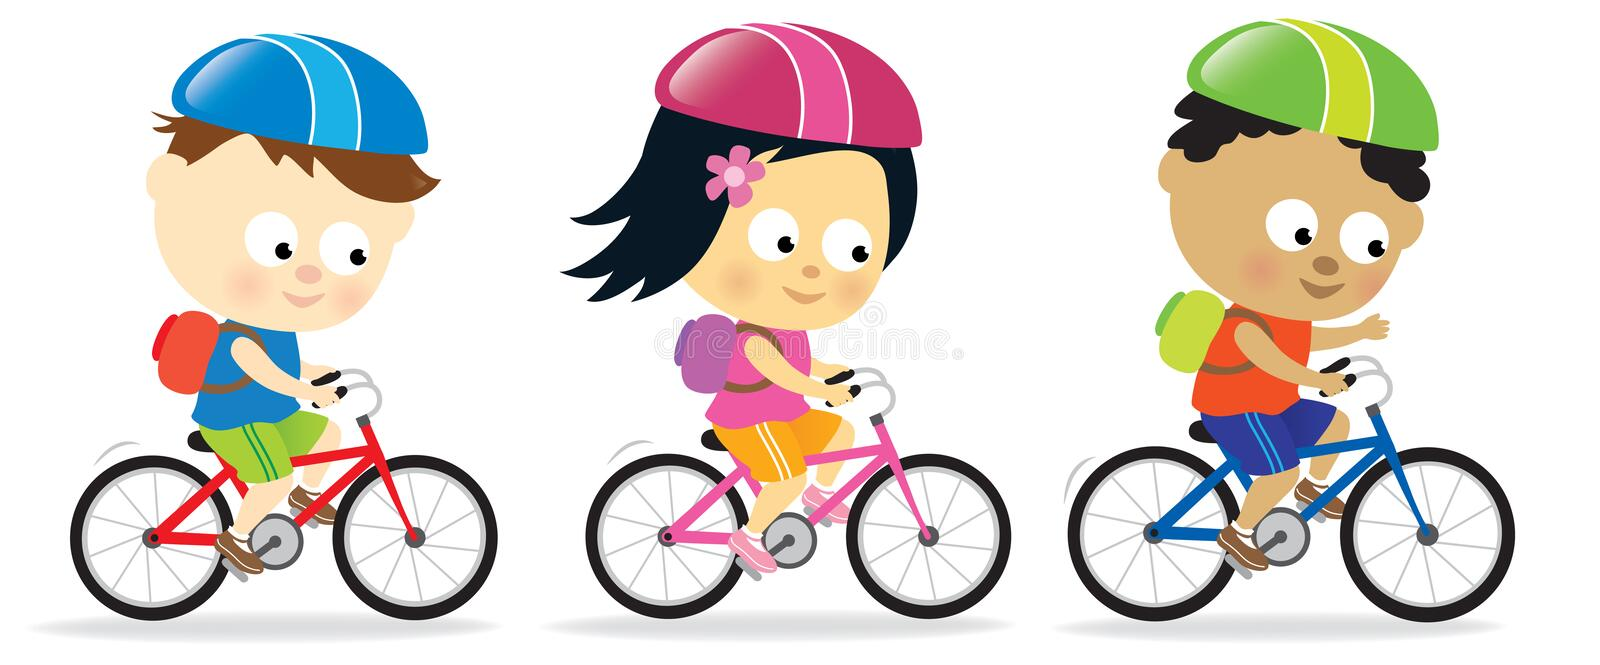 Kids riding bikes royalty free illustration